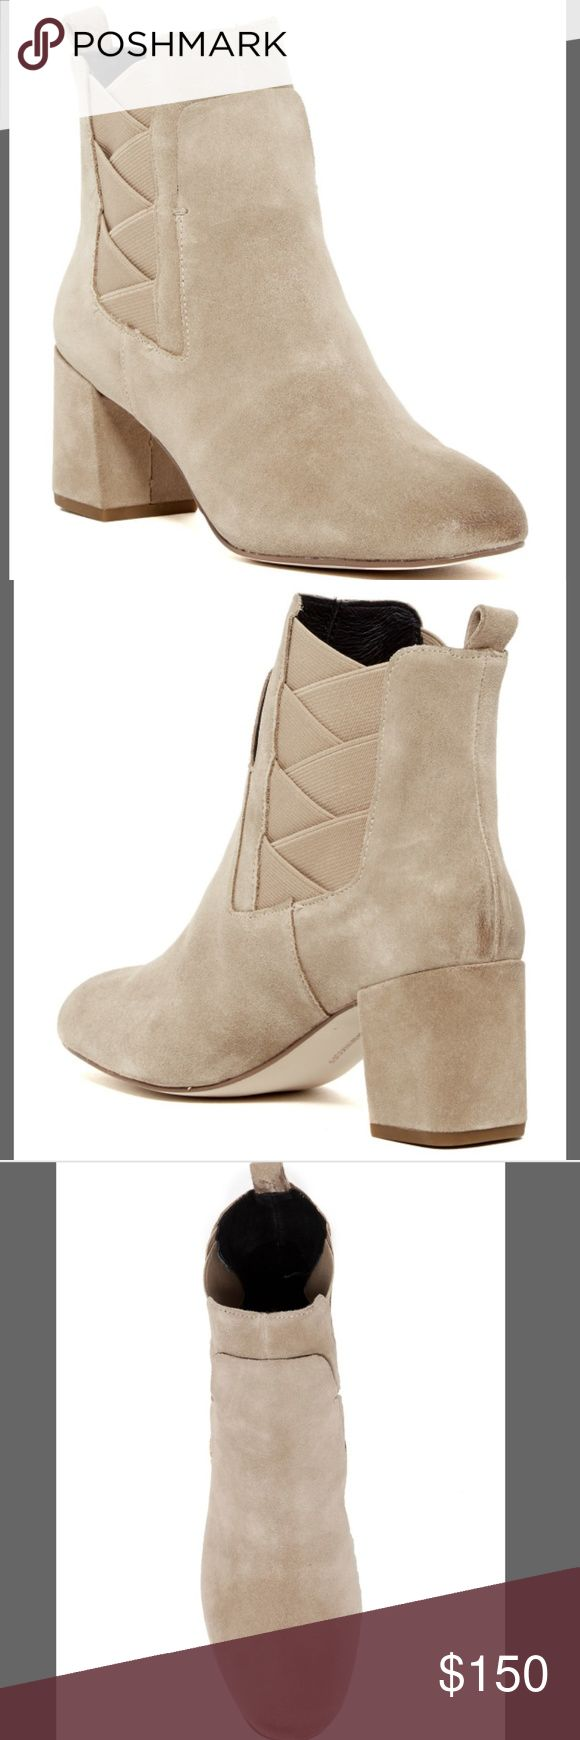 "BNIB Rebecca Minkoff Block Heel Suede Boot Brand new in box.  Color is Taupe.  Runs small; order next size up.   - Round burnished toe - Suede construction - Gore panel insets - Pull-on with back pull-tab - Lightly padded footbed - Block heel - Approx. 5"" shaft height, 10"" opening circumference - Approx. 2.5"" heel  Materials Suede upper, rubber sole Rebecca Minkoff Shoes Ankle Boots & Booties"